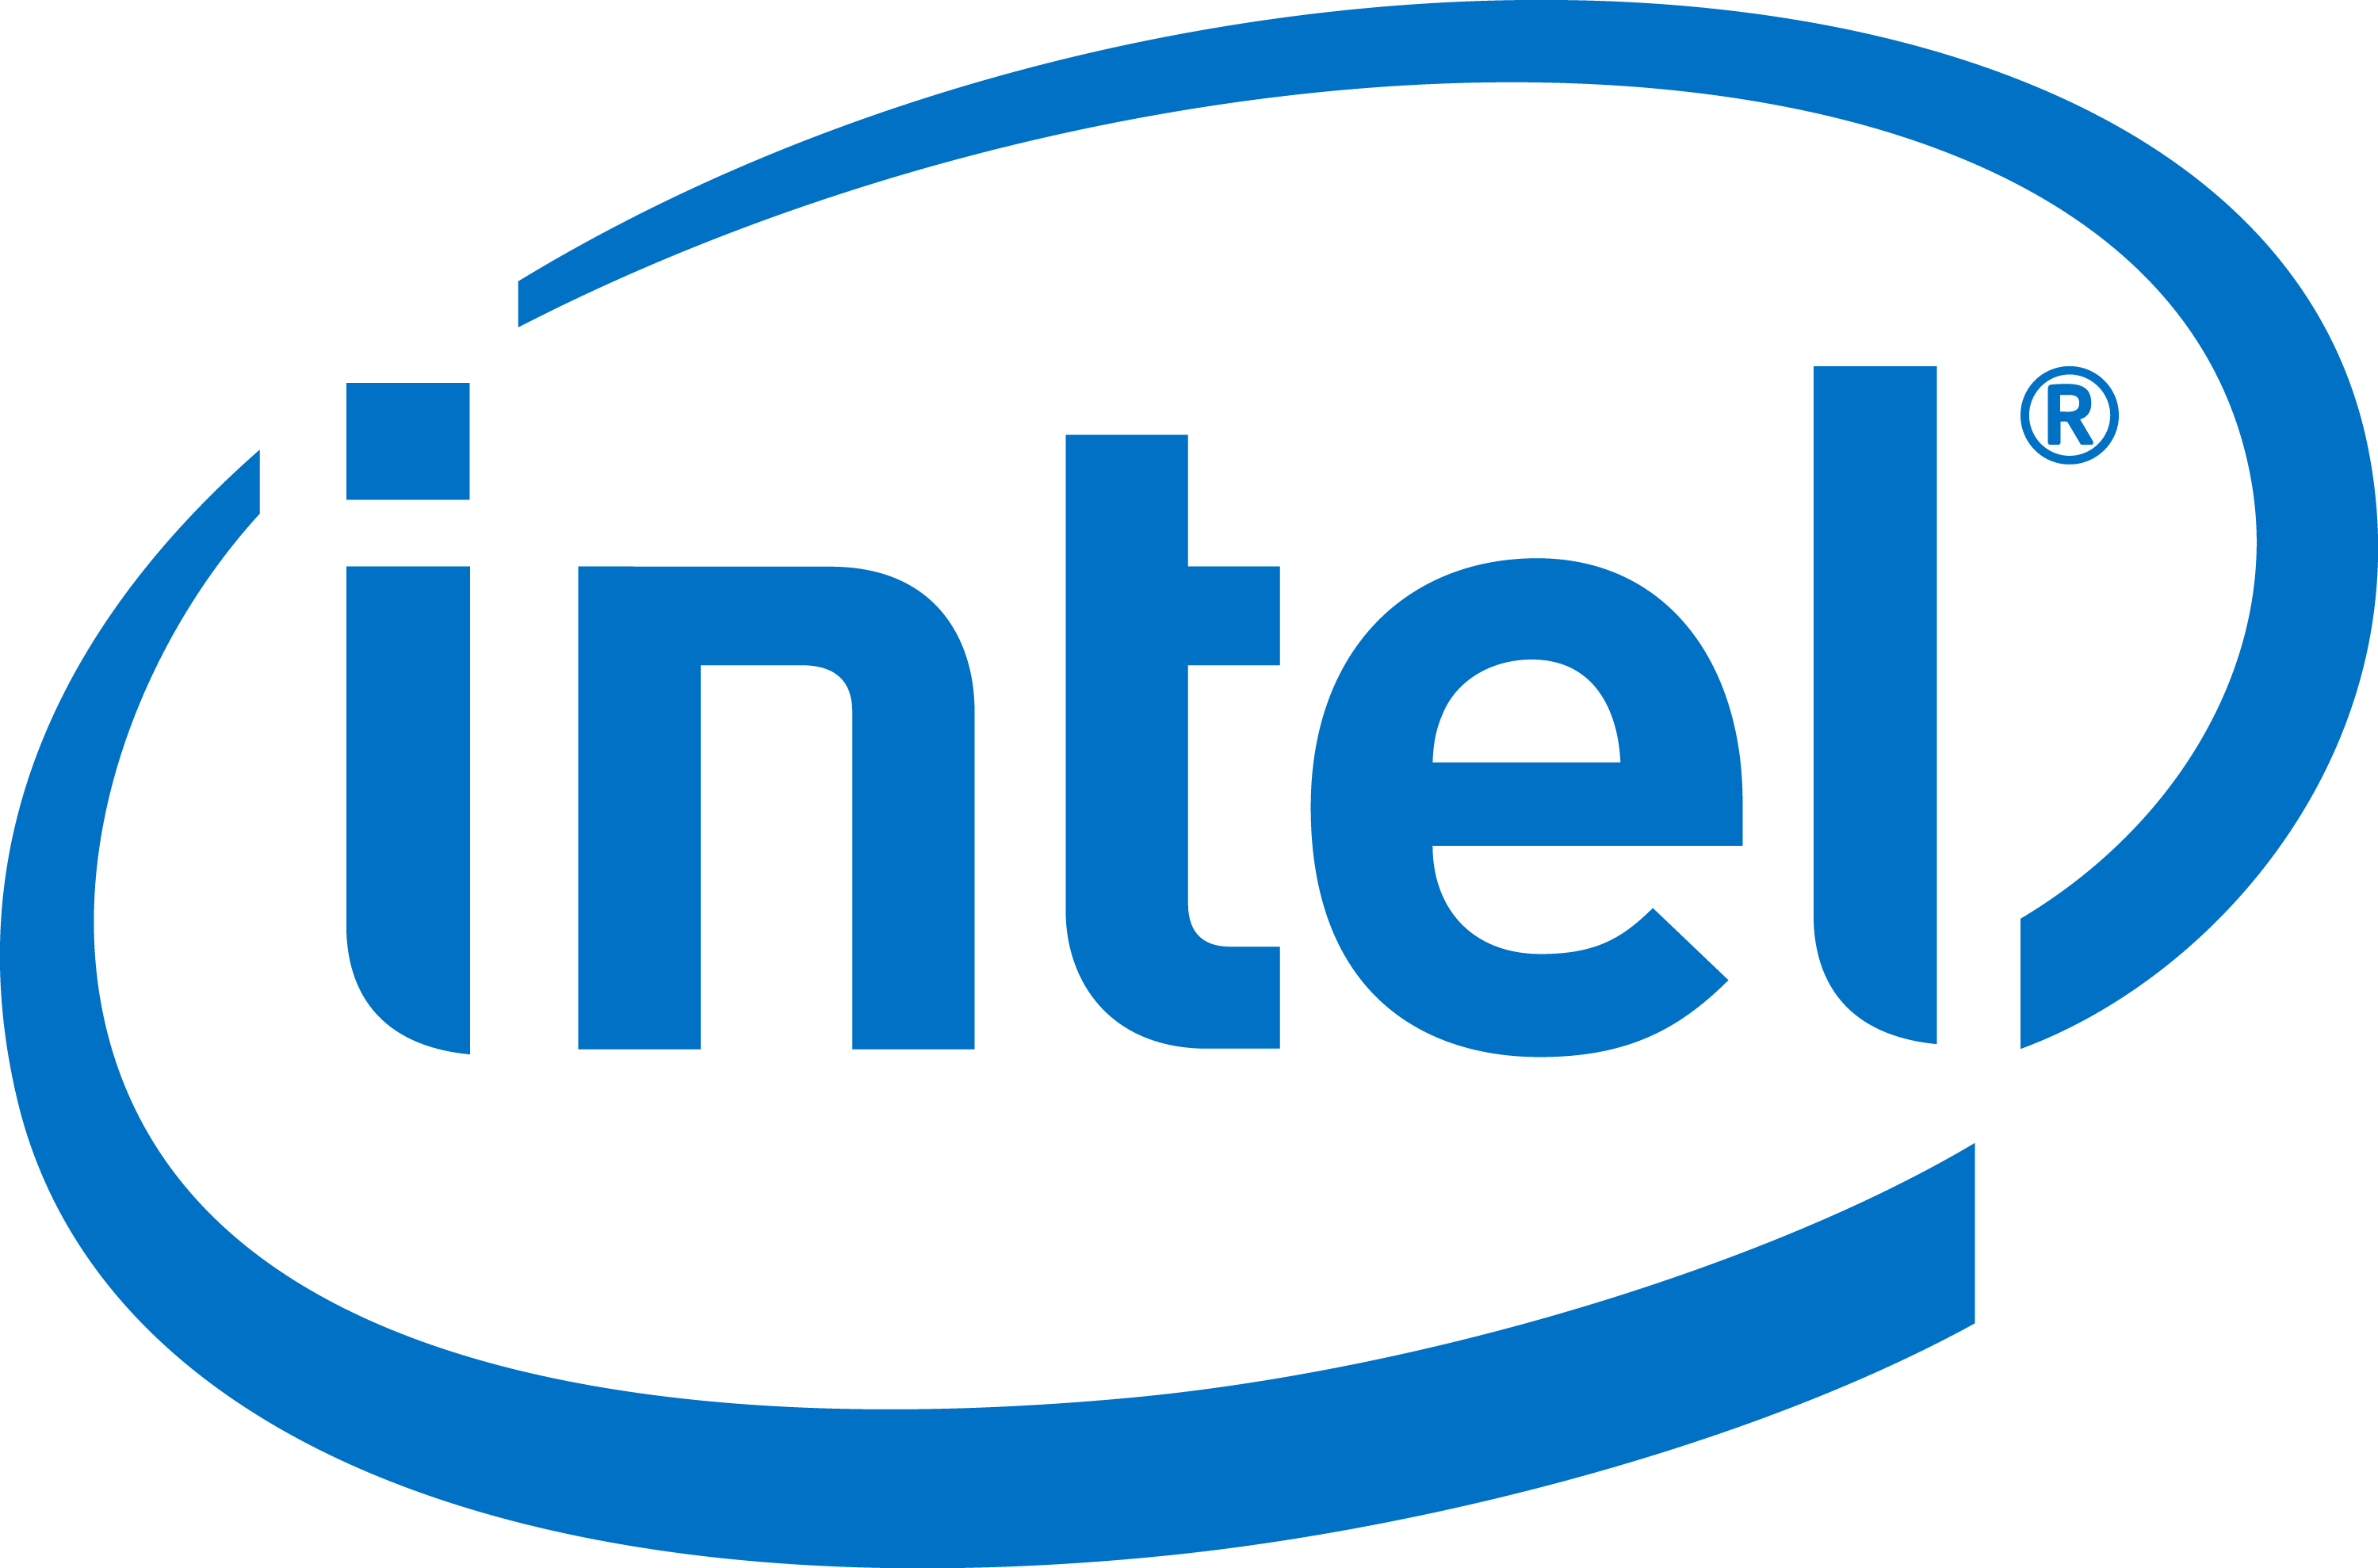 Systems Thinking: Intel and the FreeBSD Project